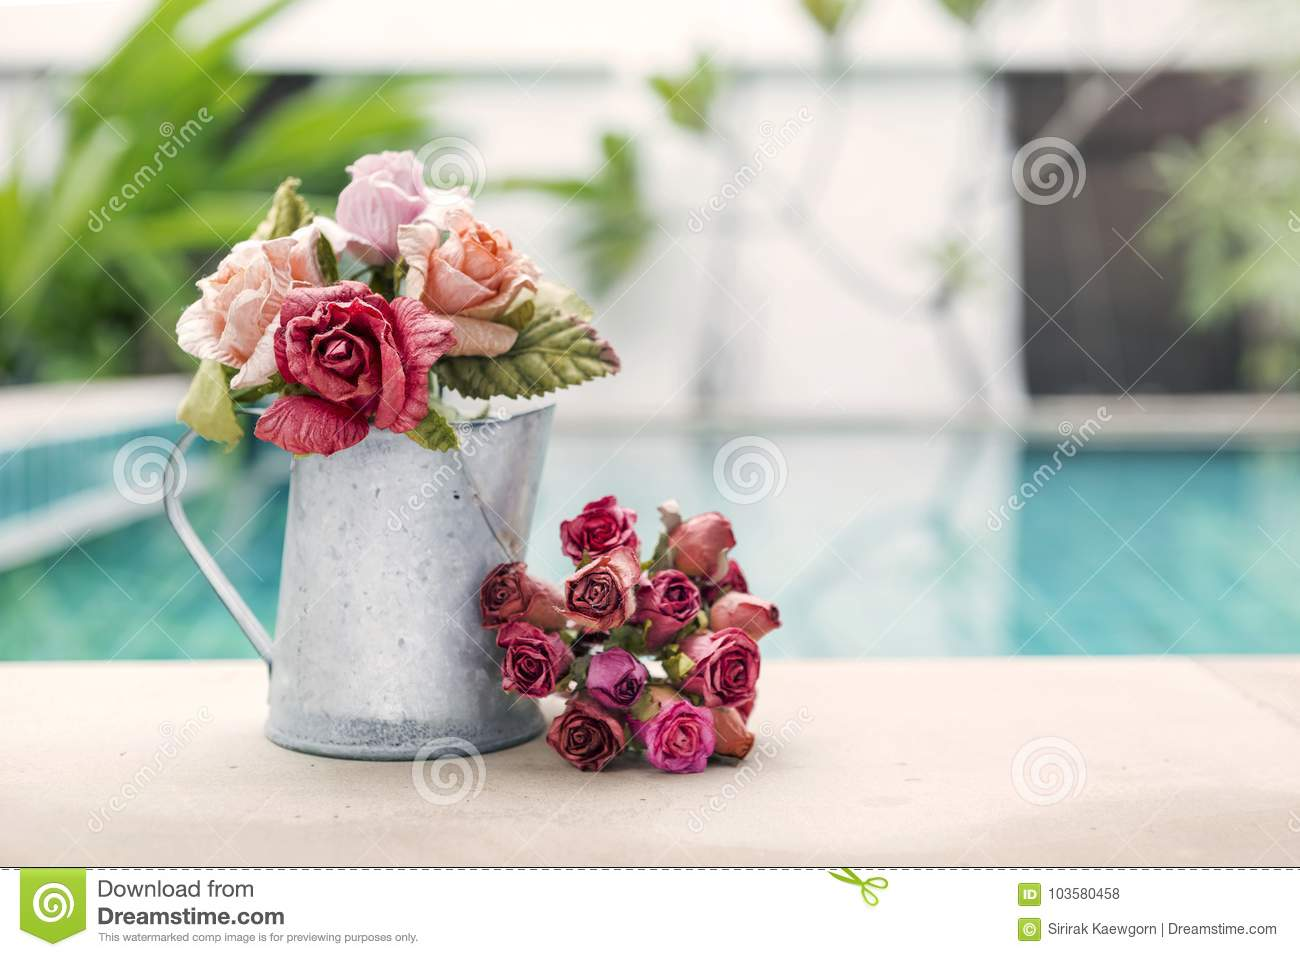 Beautiful Rose Paper Flower In Water Tin Pot Over Blurred Swimming